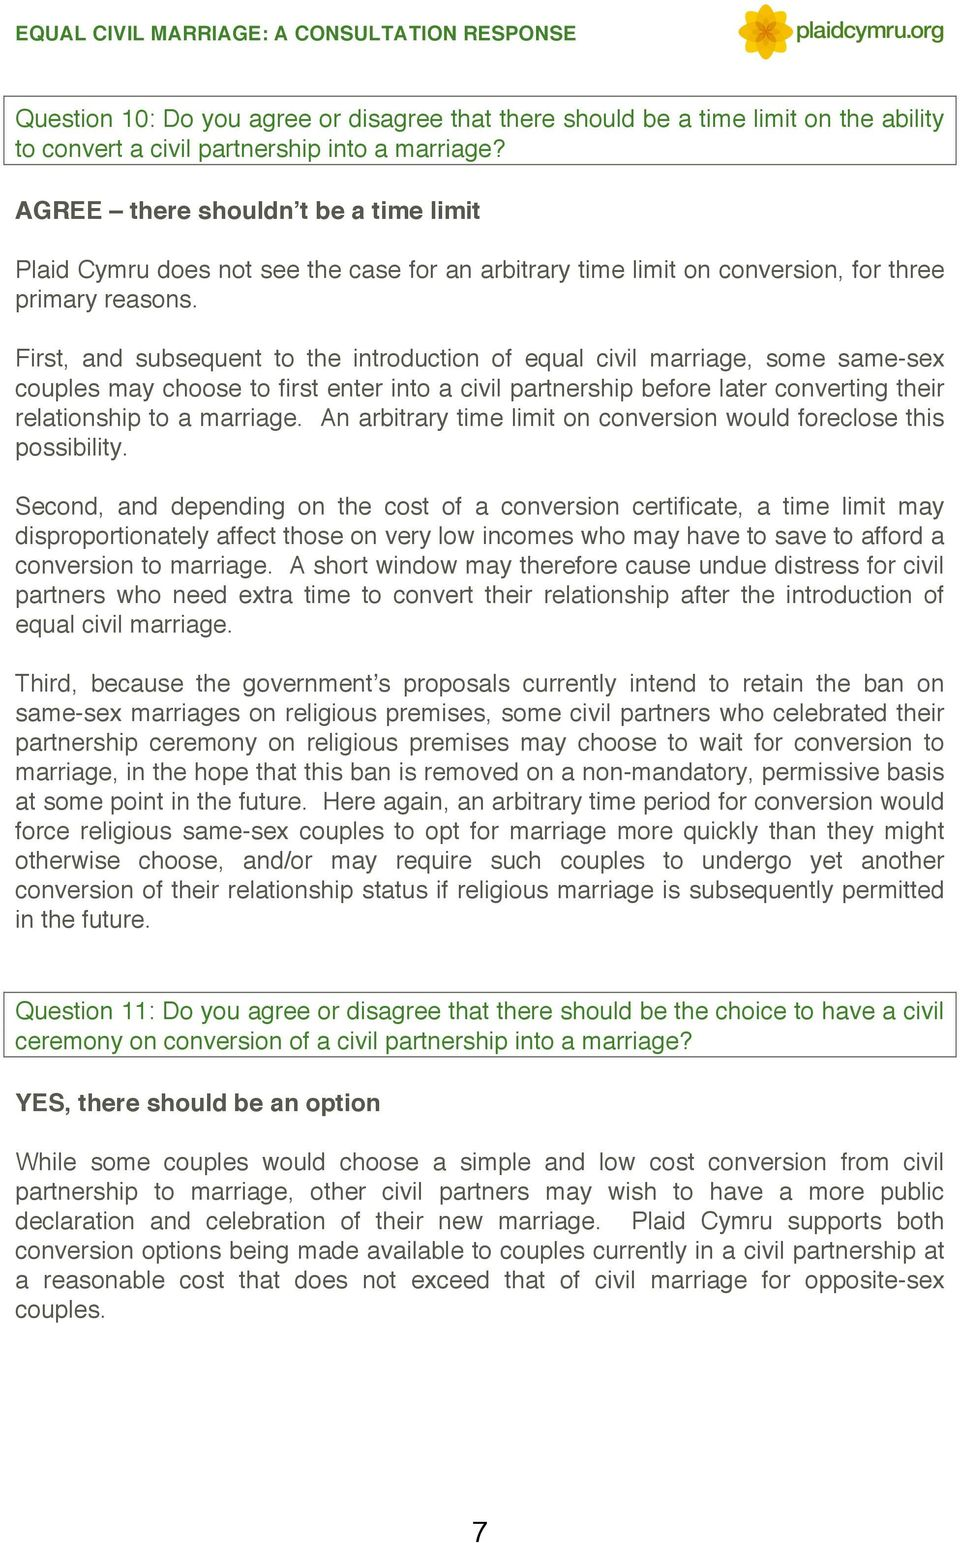 First, and subsequent to the introduction of equal civil marriage, some same-sex couples may choose to first enter into a civil partnership before later converting their relationship to a marriage.